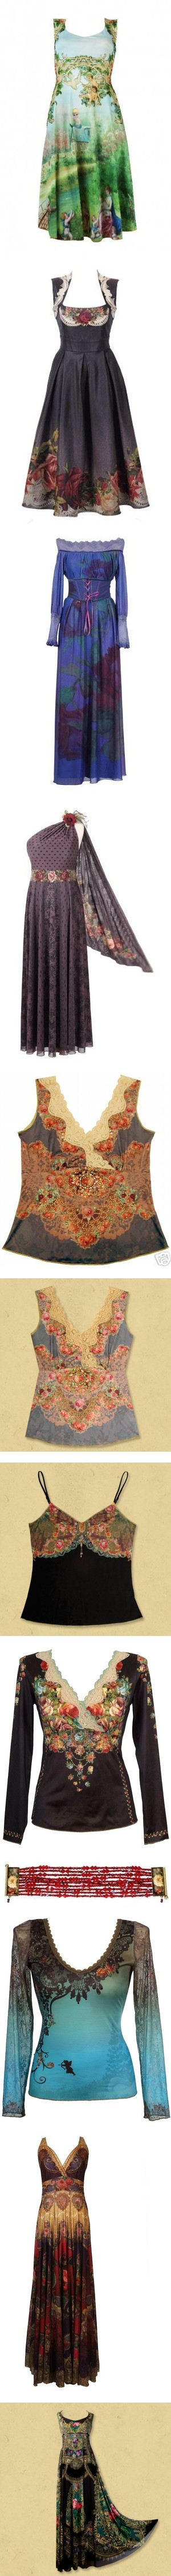 Michal Negrin 01 by ketutar on Polyvore featuring women's fashion, dresses, blue dress, waist belt, tops, lacy tops, lace shirt, lace top, victorian shirt and shirt top